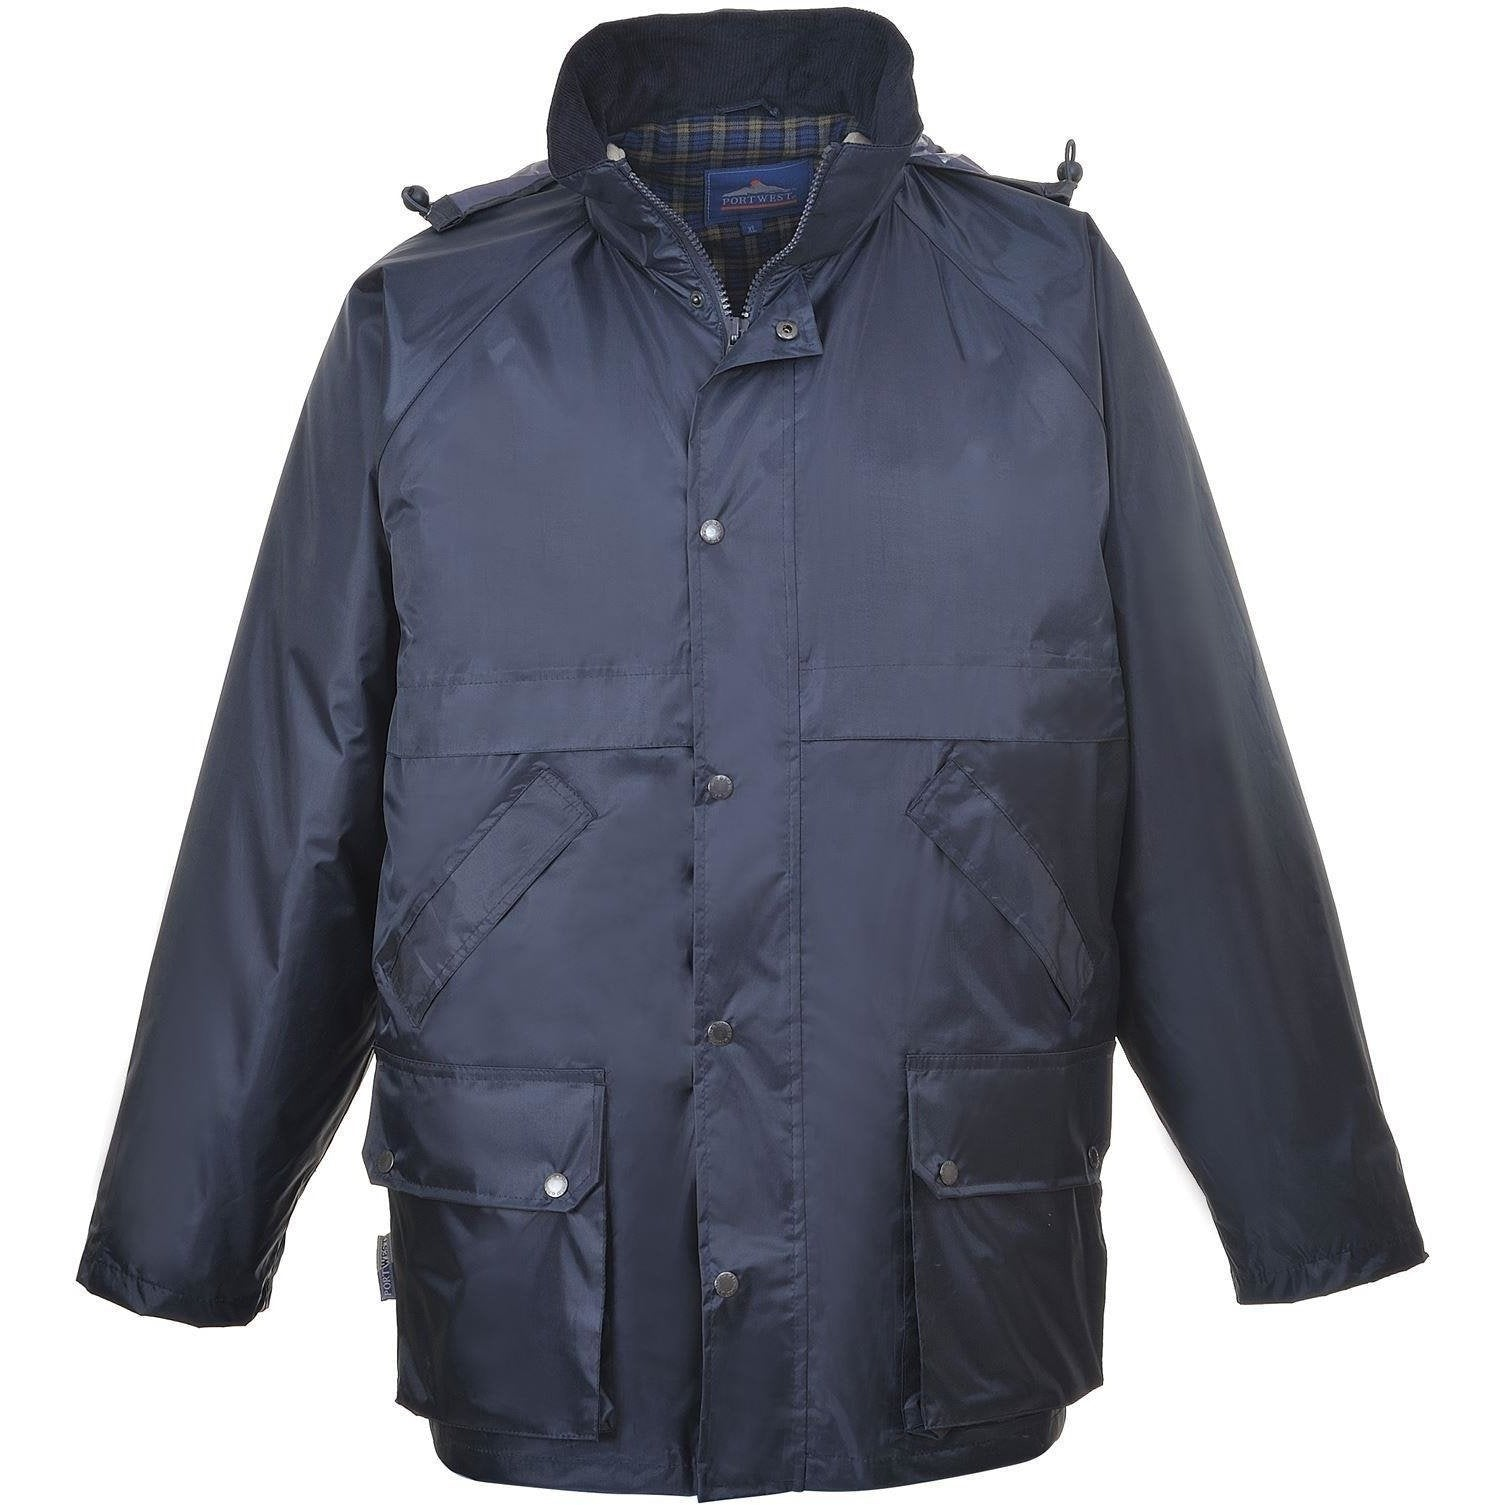 Portwest Perth Stormbeater Jacket S430 - reid outdoors